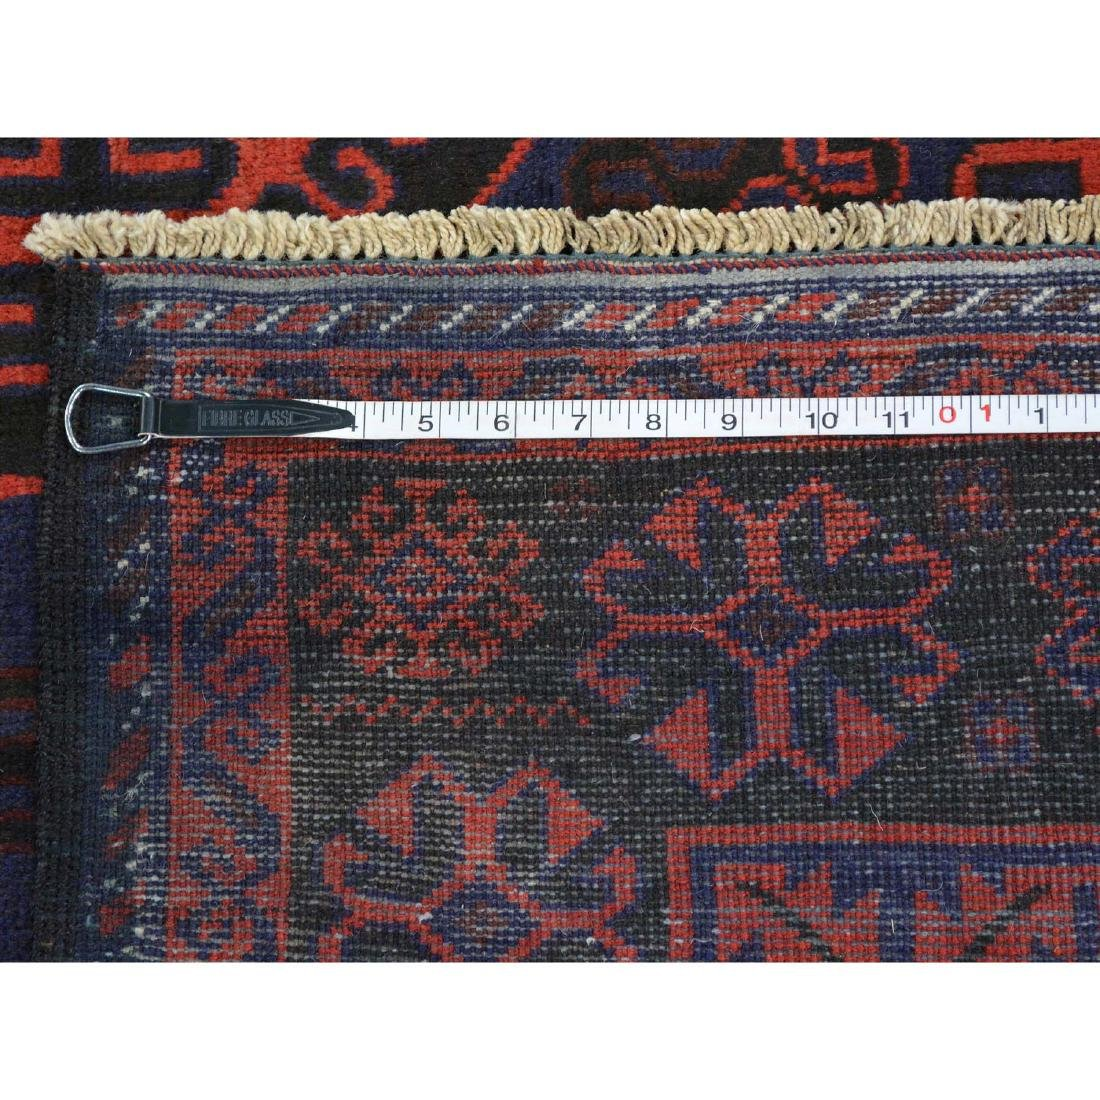 Tribal Design Persian Baluch Hand Made Rug 6.7x10.8 - 5